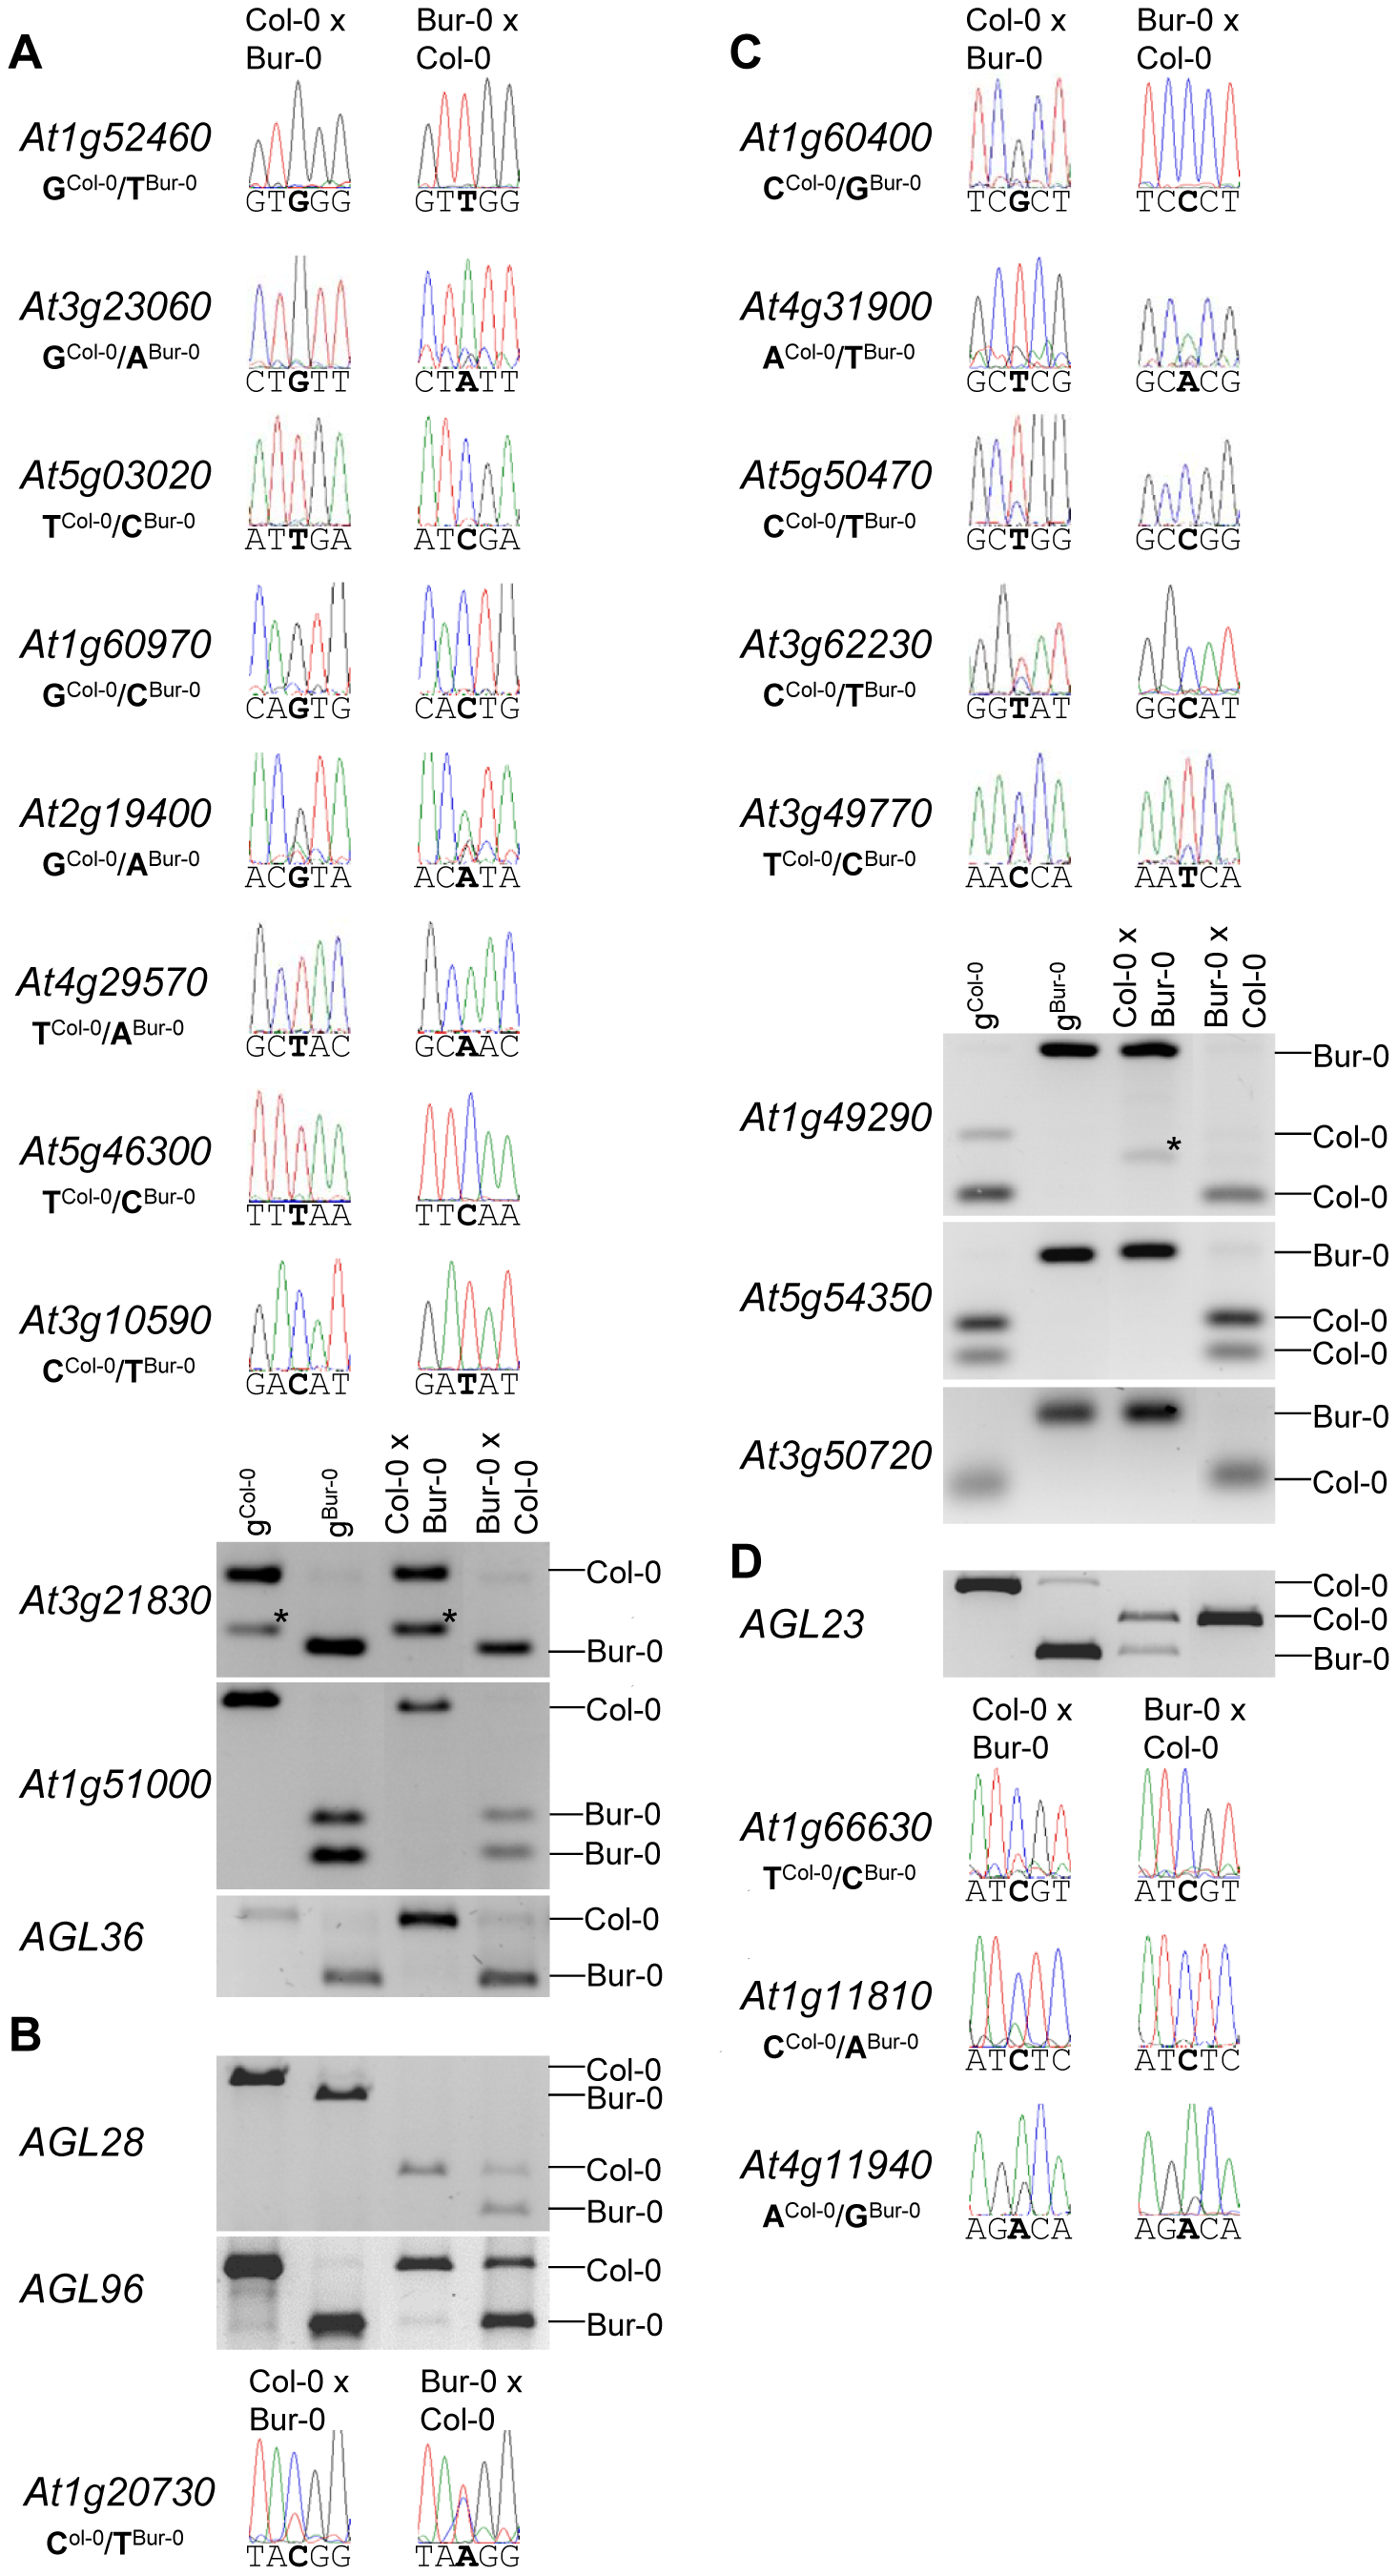 Allele-Specific Expression Analysis of MEGs and PEGs.